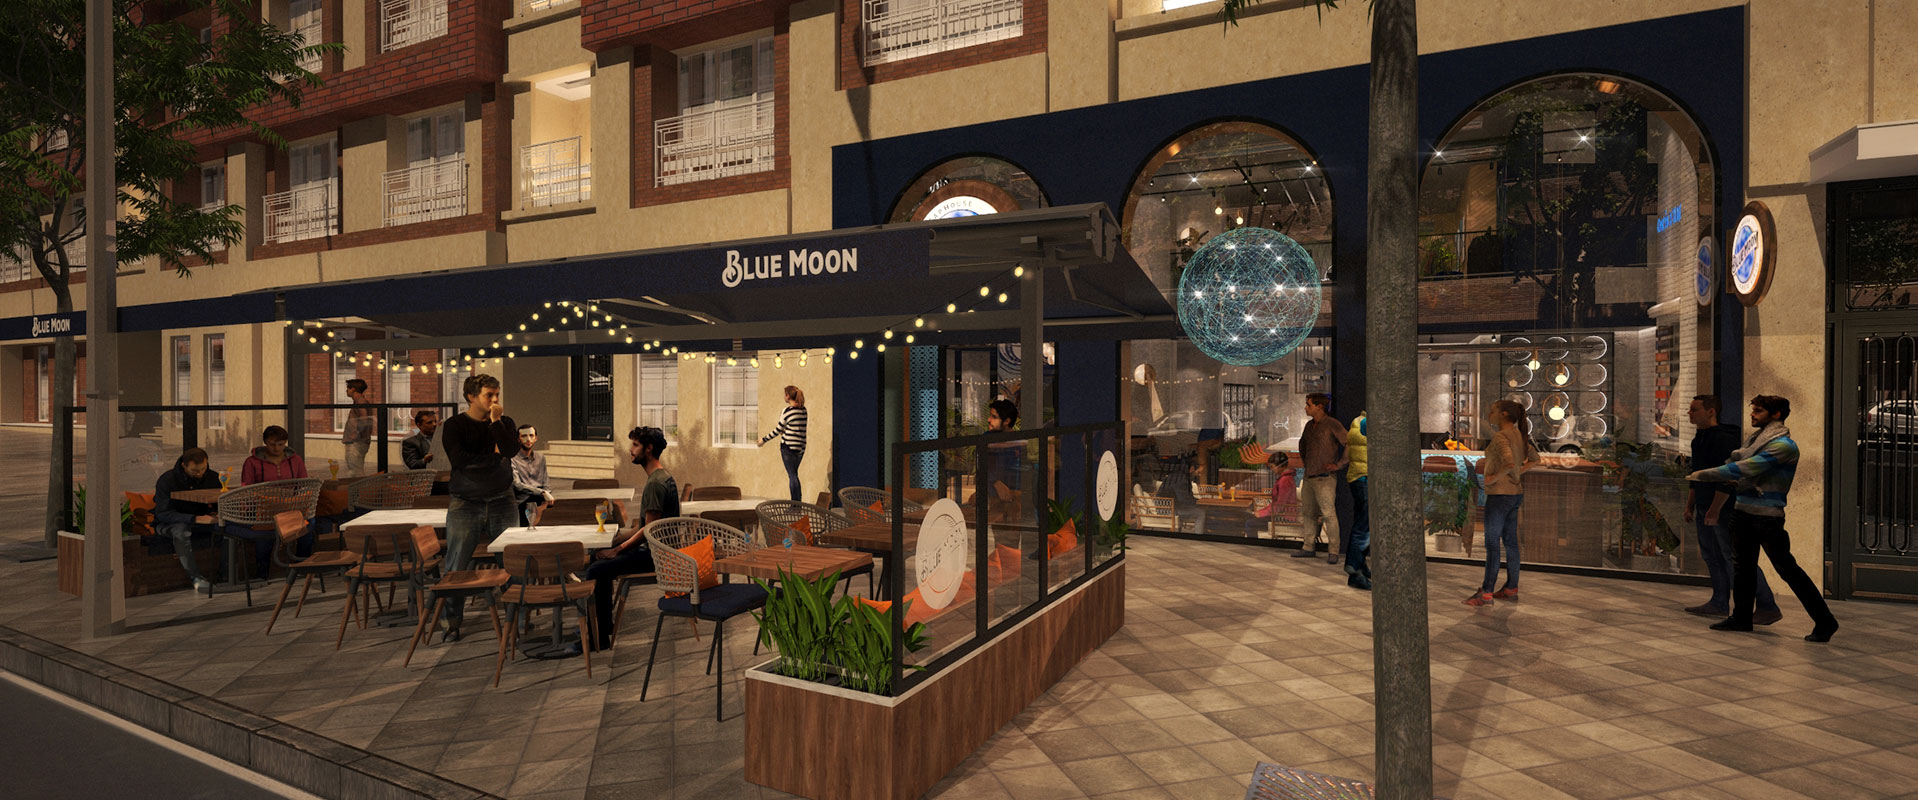 Blue Moon Brewery Company